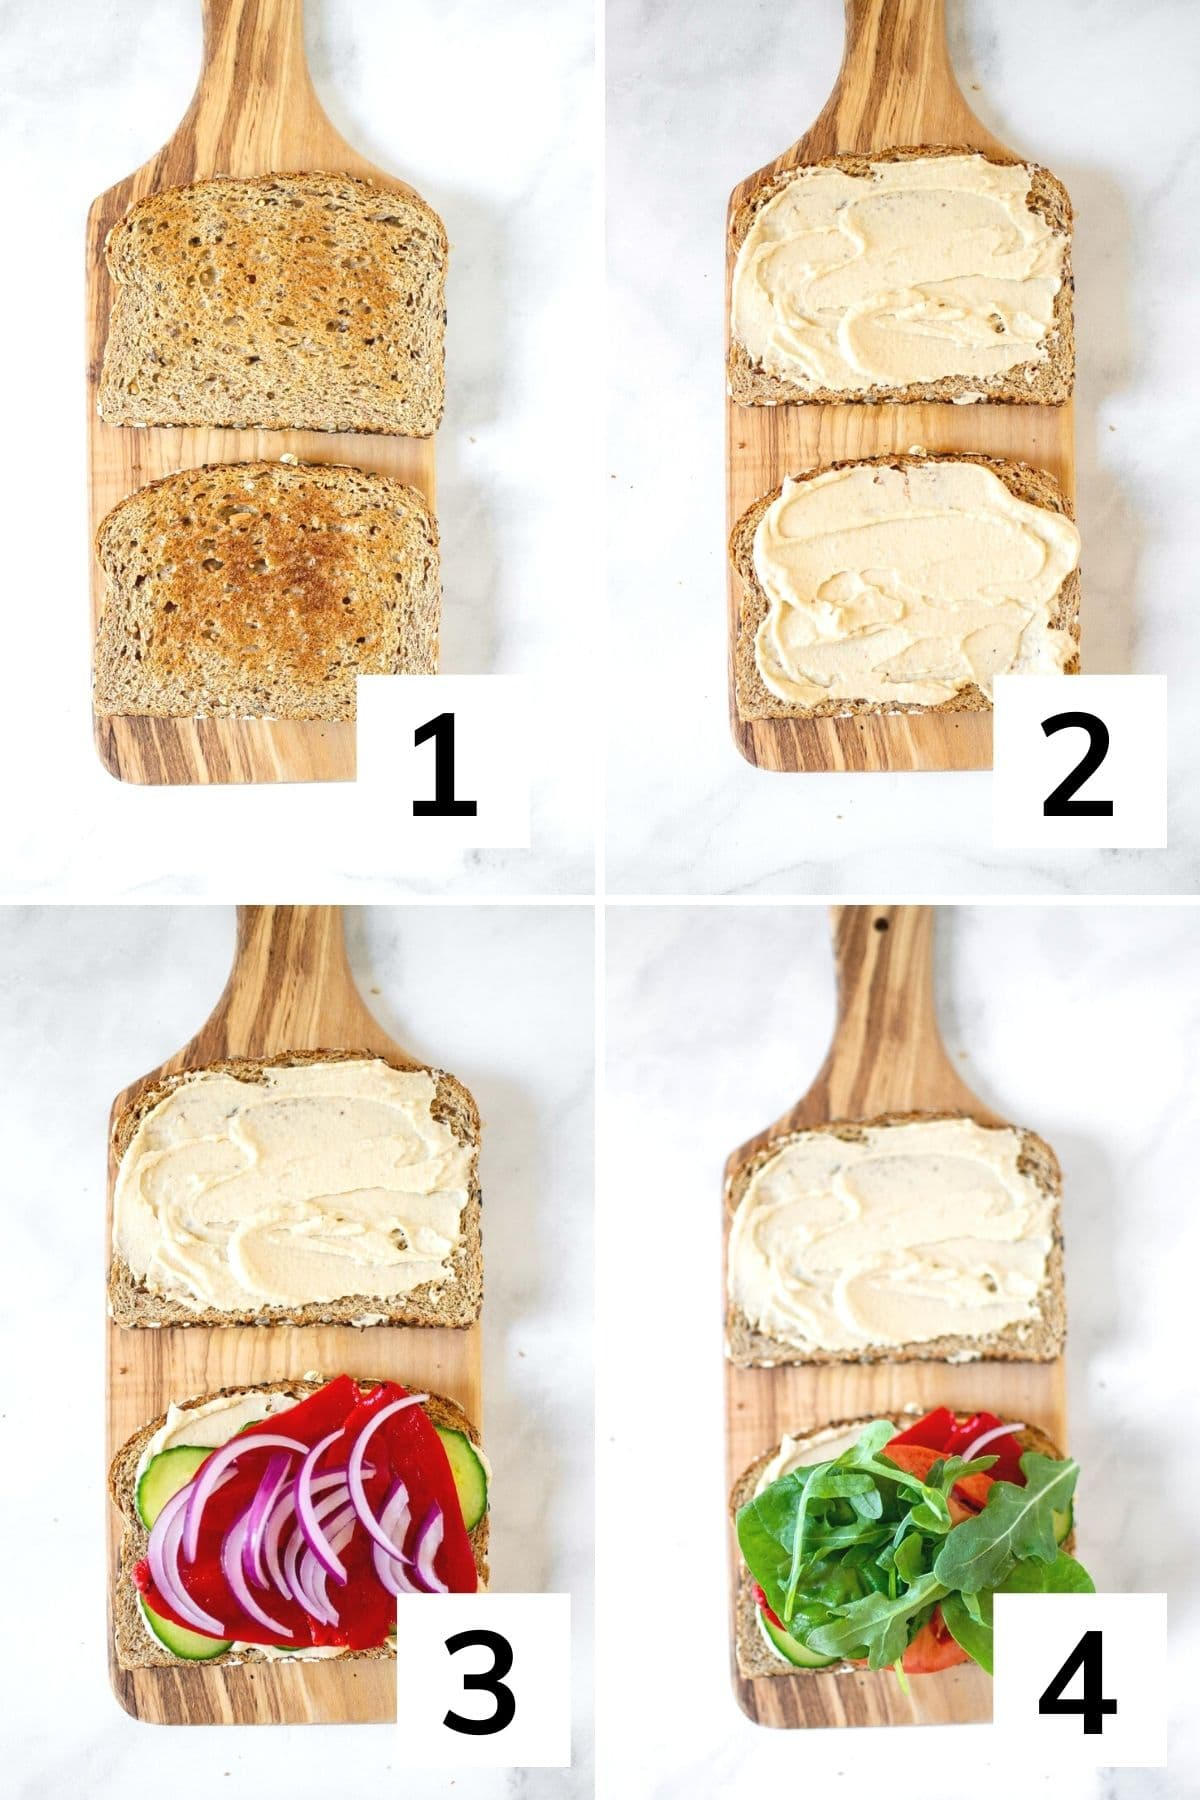 How to make this sandwich step by step